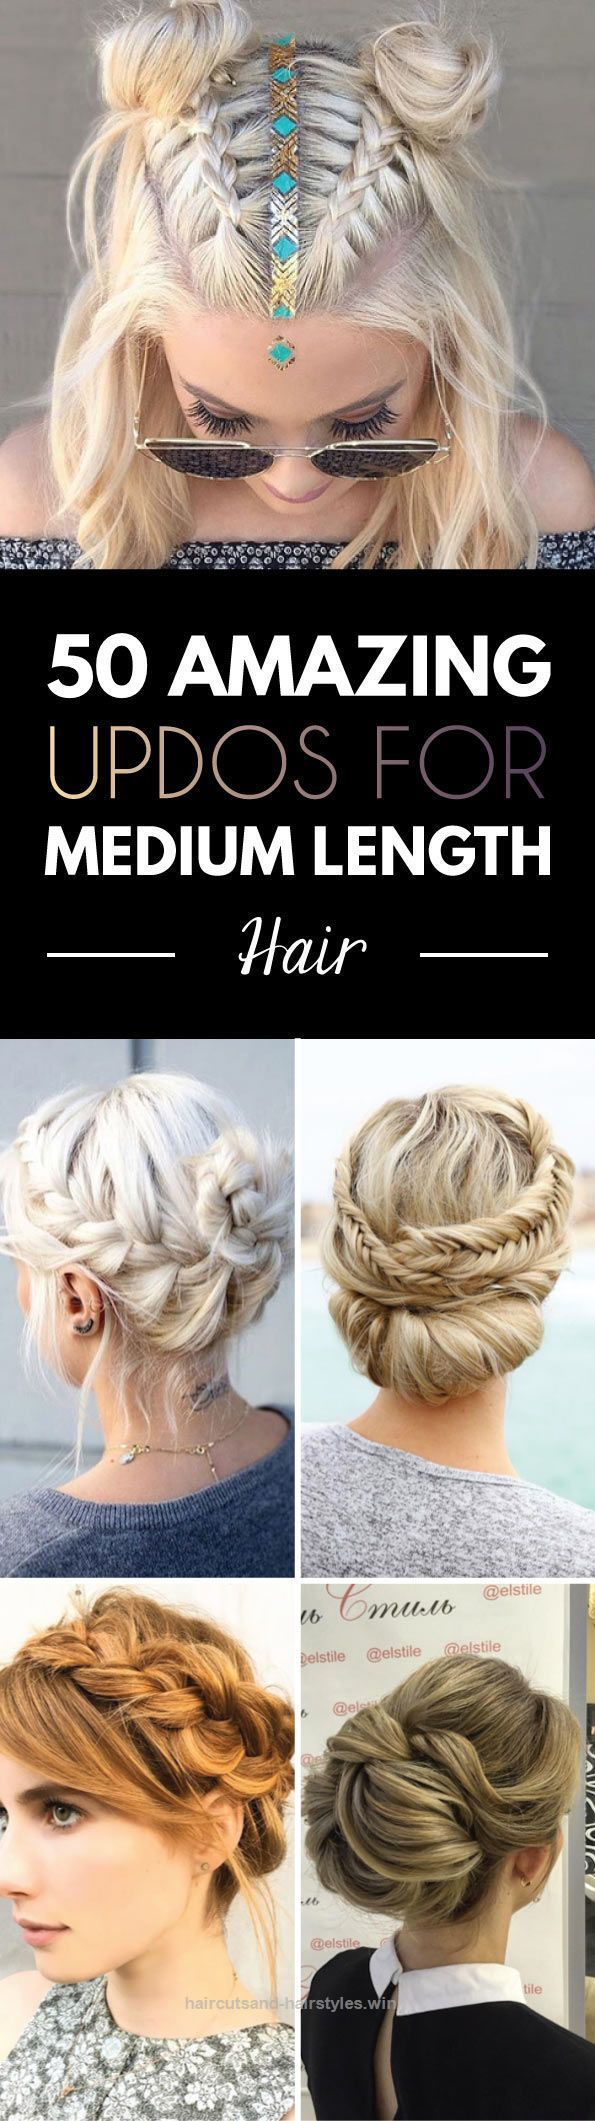 Look Over This Share Tweet Pin Mail Messy bun with twist. (Romeu Felipe) Double flipped braid. (Heather Chapman) Amazing fishtail updo. (Doni) Twisted layered updo. (Lainey) Braids  ..